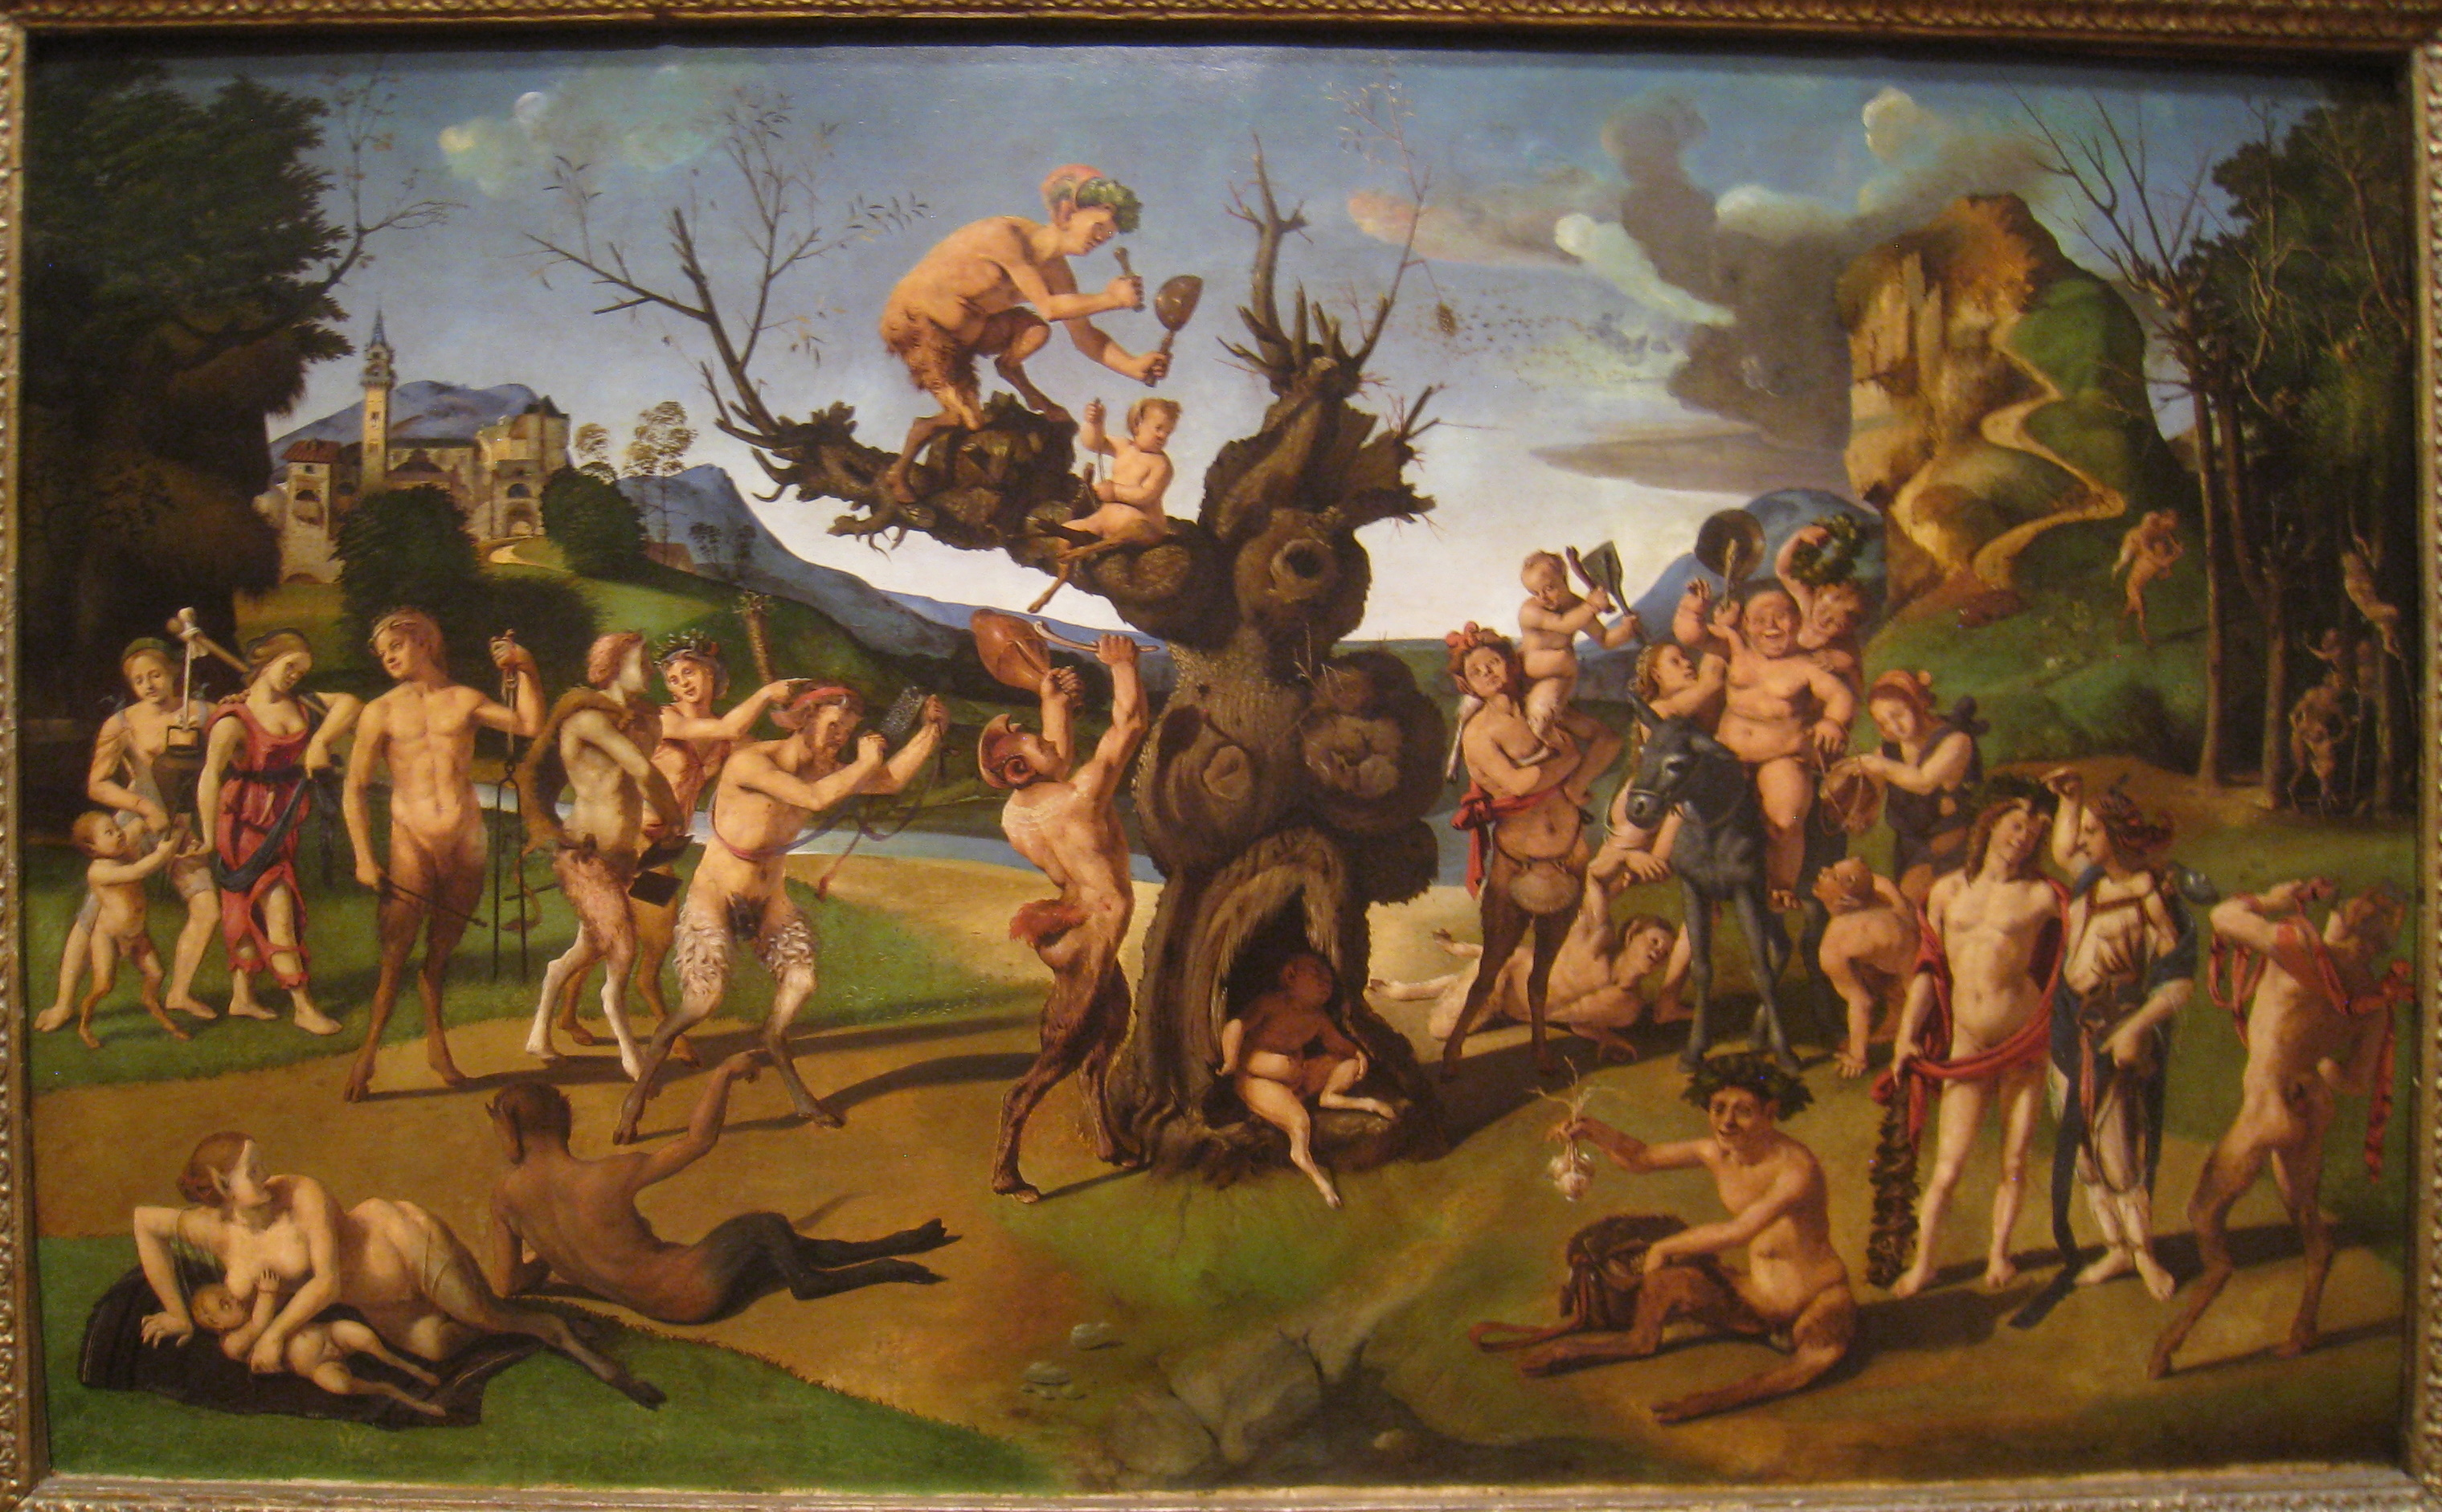 File:The Discovery of Honey by Bacchus, by Piero di Cosimo (c.